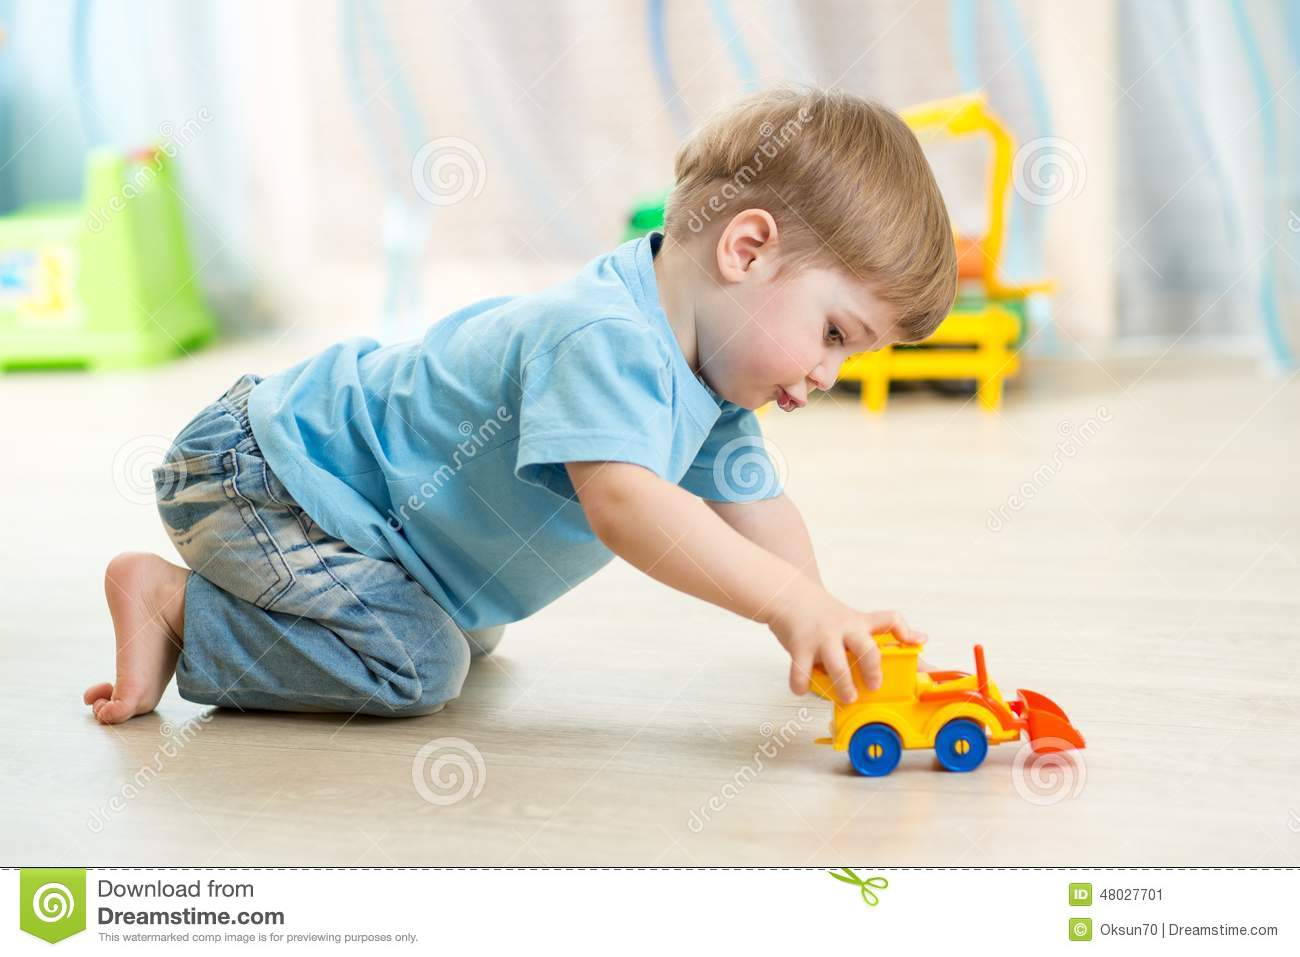 Baby Boy Toy Cars : Blond boy playing with colorful car toy stock image